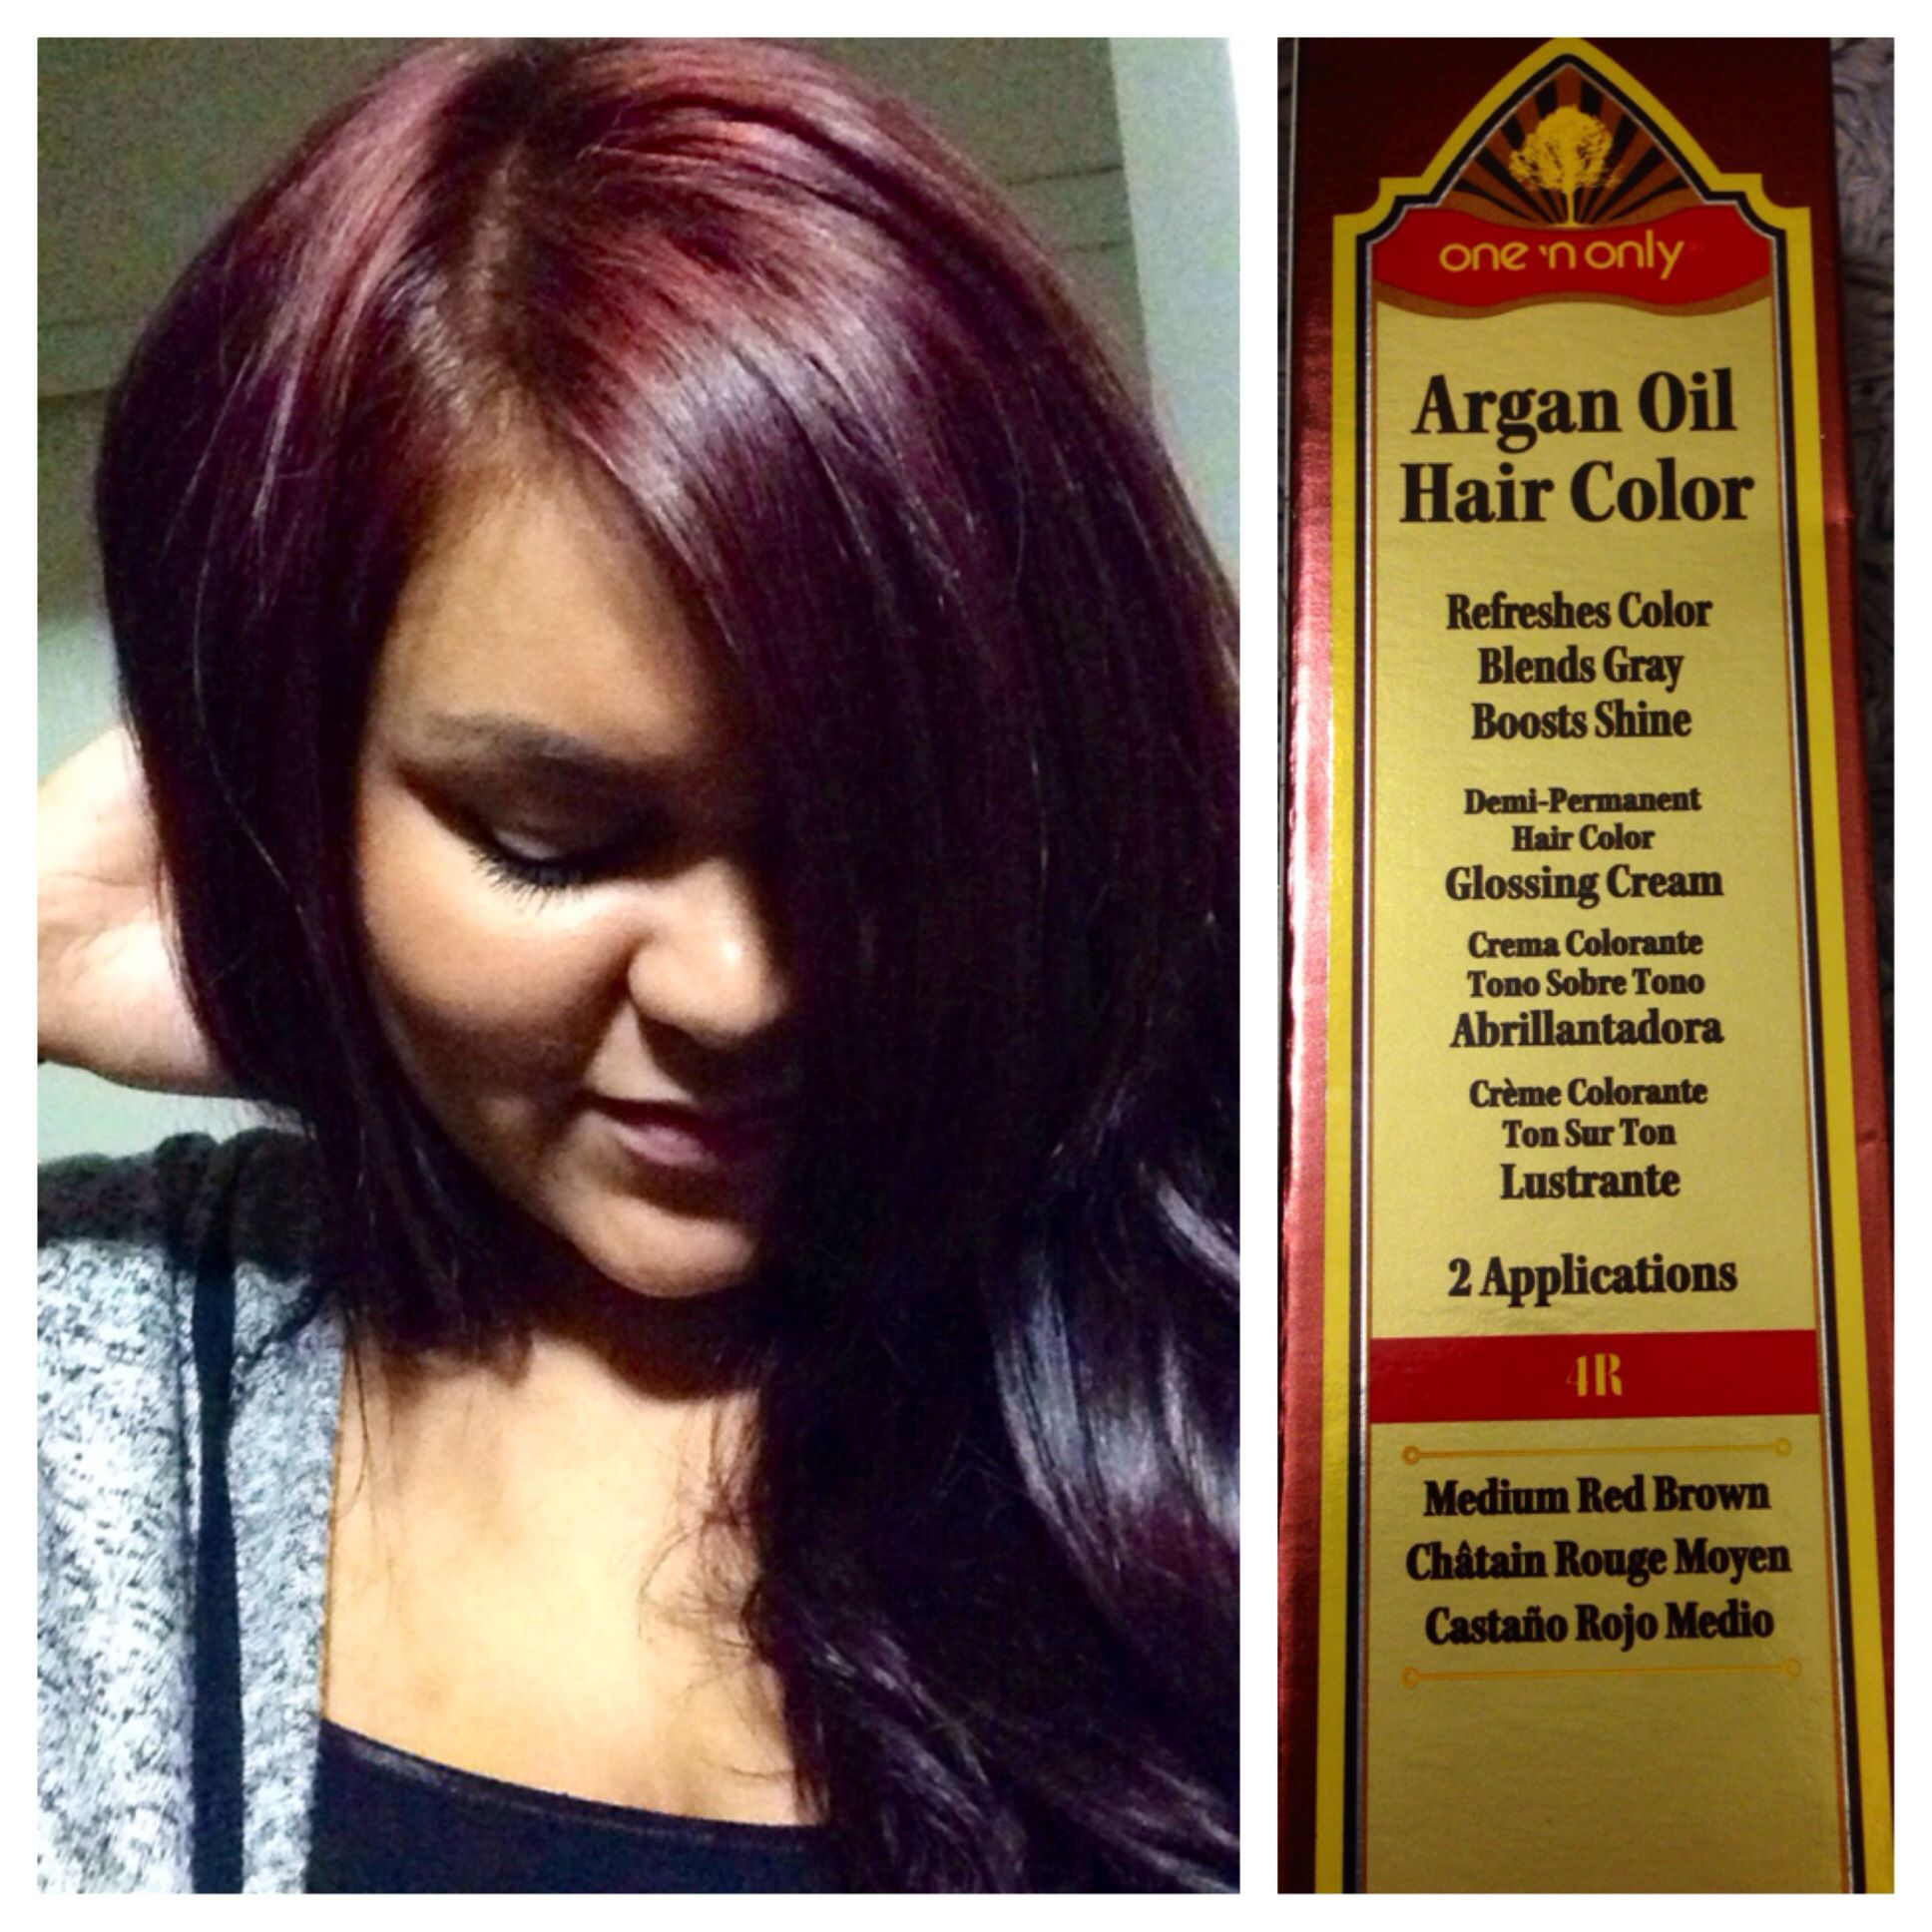 Argan Light Chocolate Brown Rachael Edwards Of Argan Oil